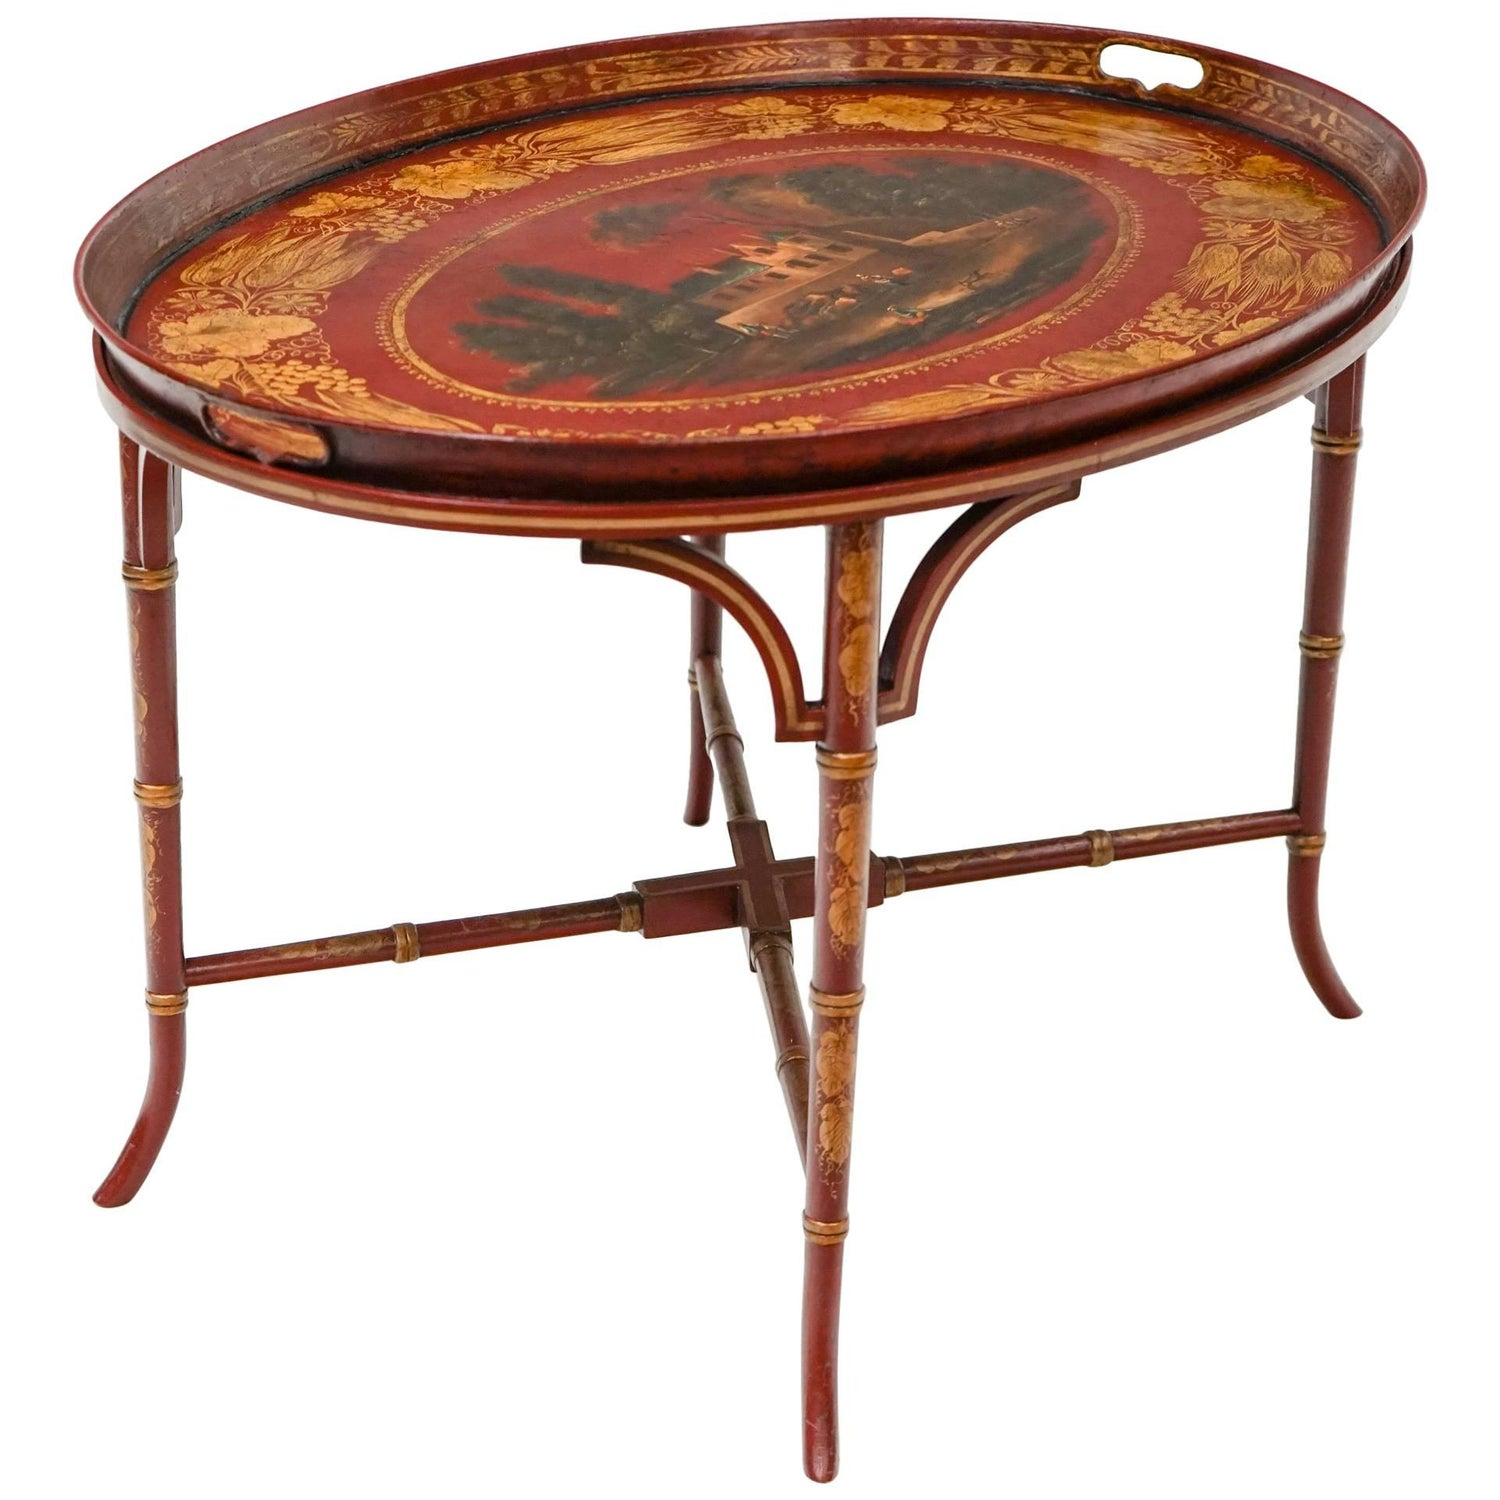 Antique Toleware Coffee Table For Sale at 1stdibs